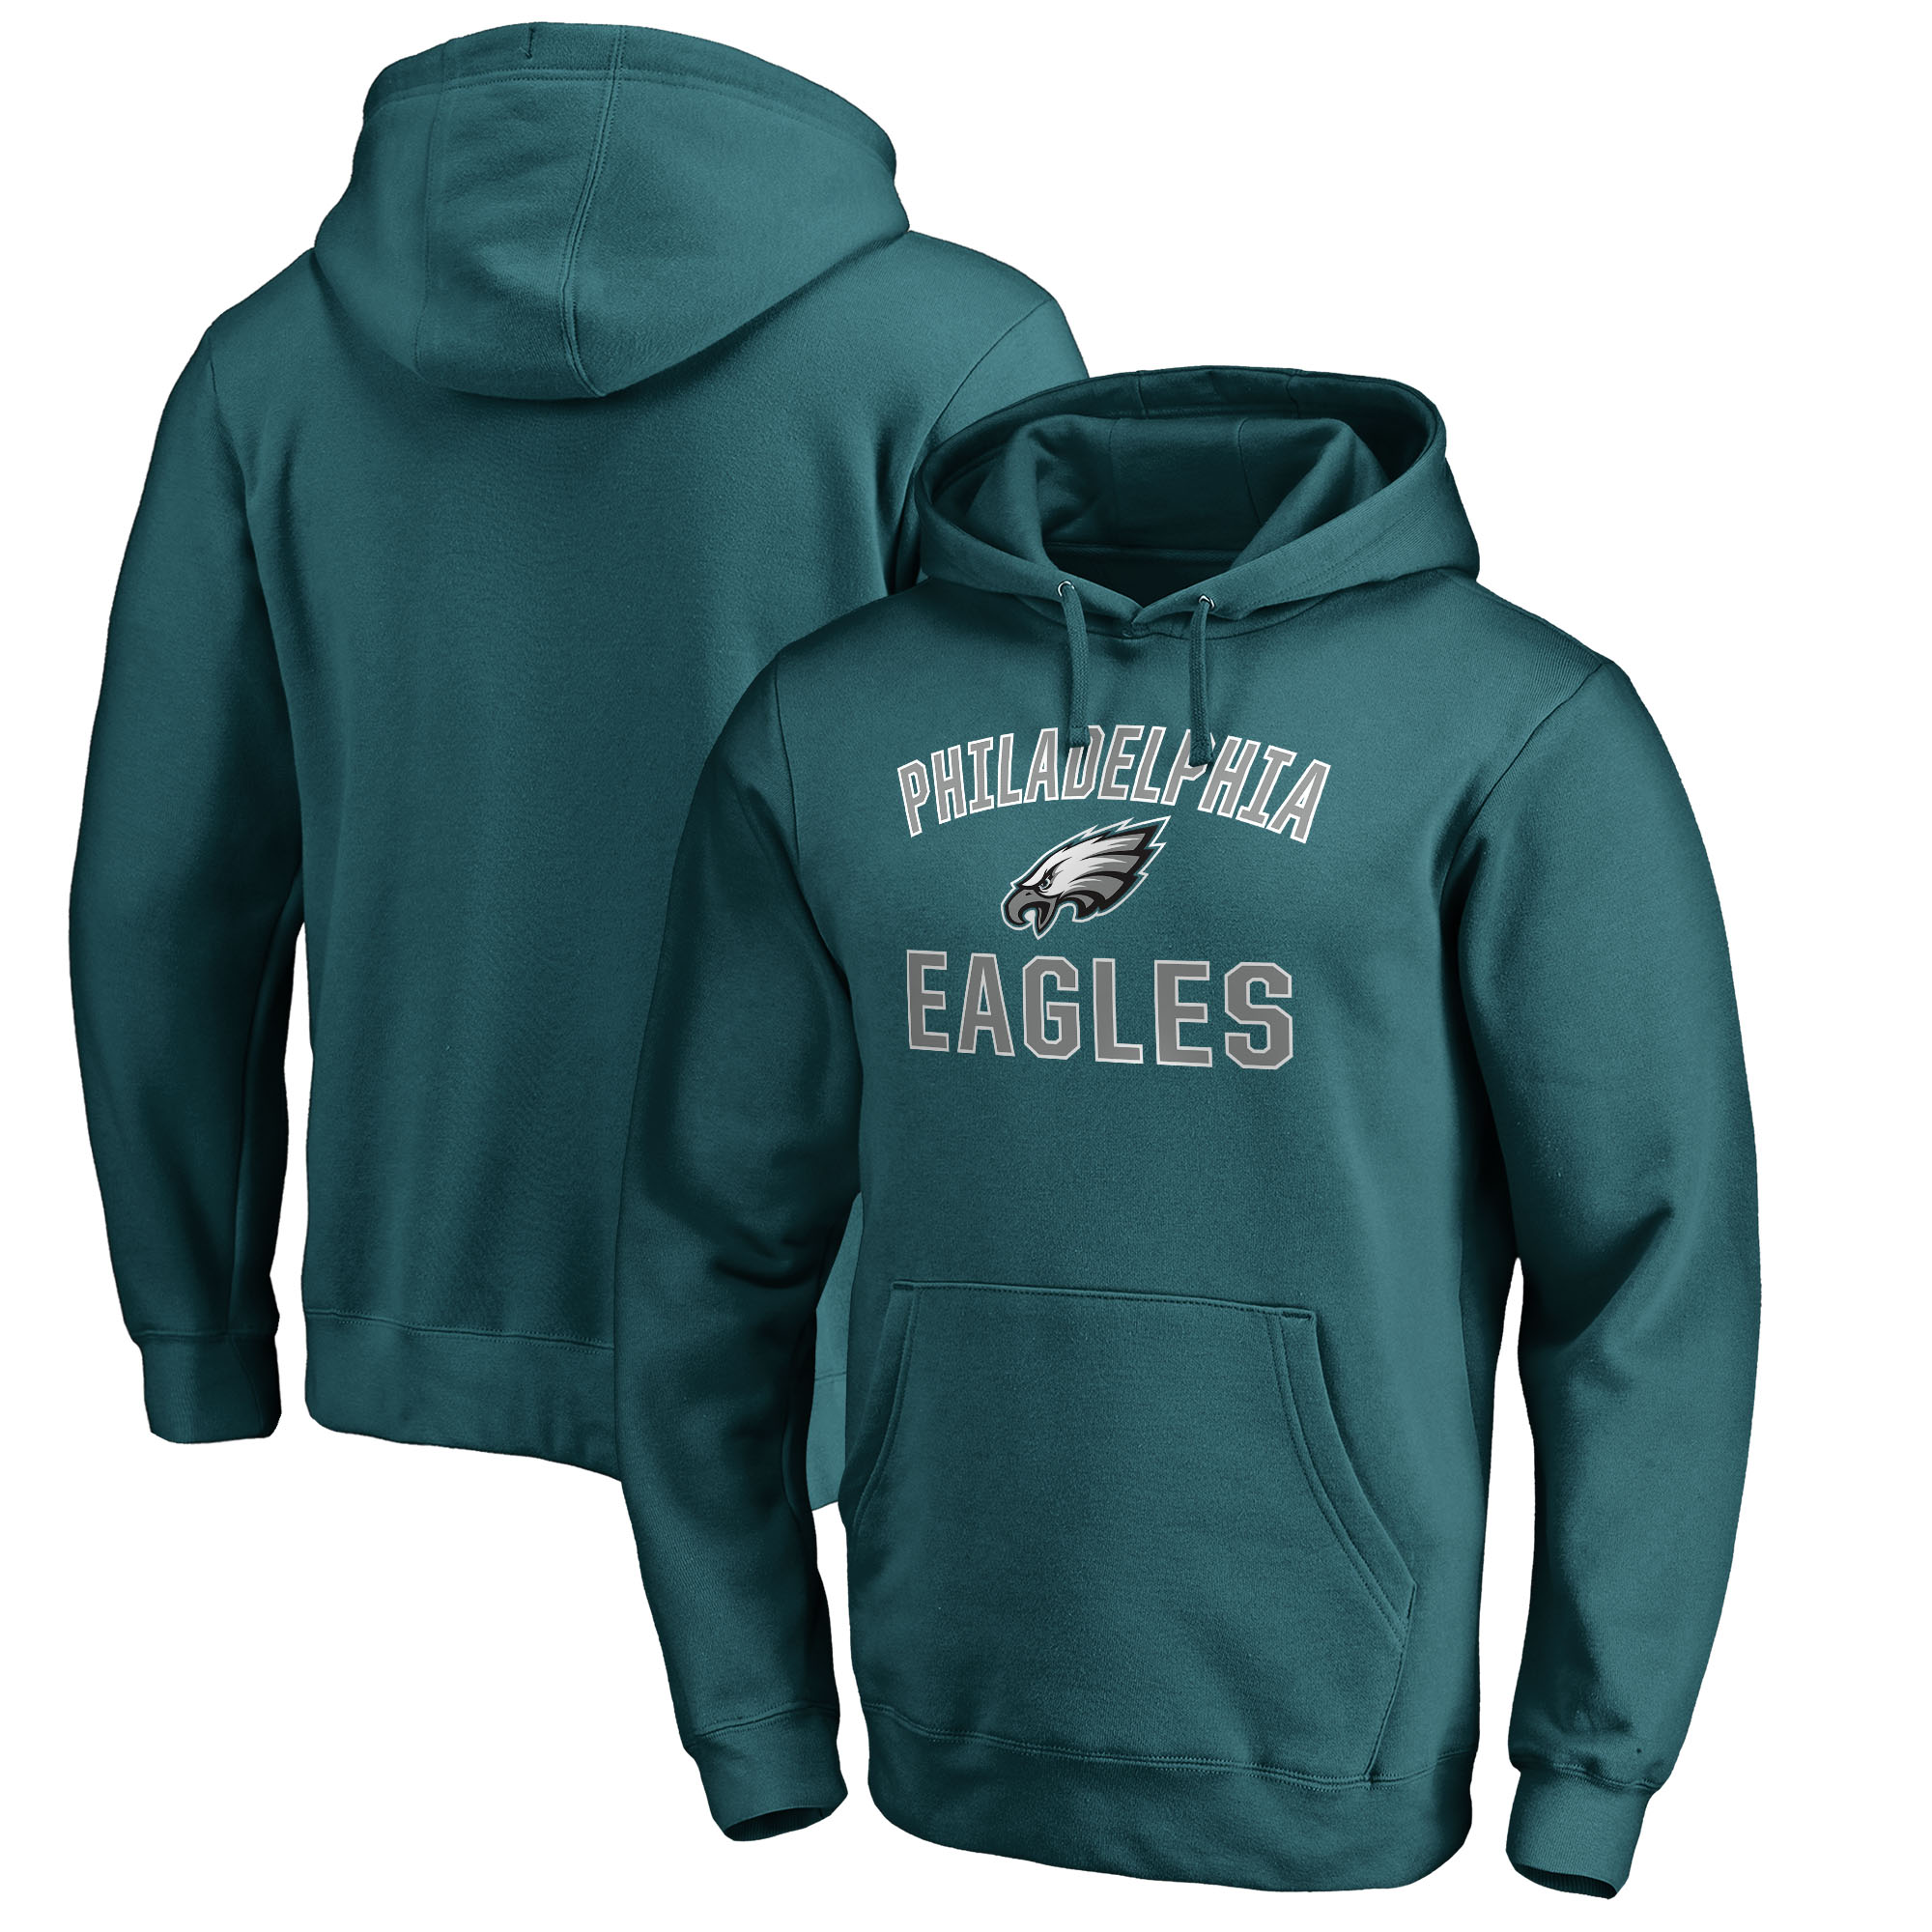 Philadelphia Eagles NFL Pro Line by Fanatics Branded Victory Arch Pullover Hoodie - Midnight Green